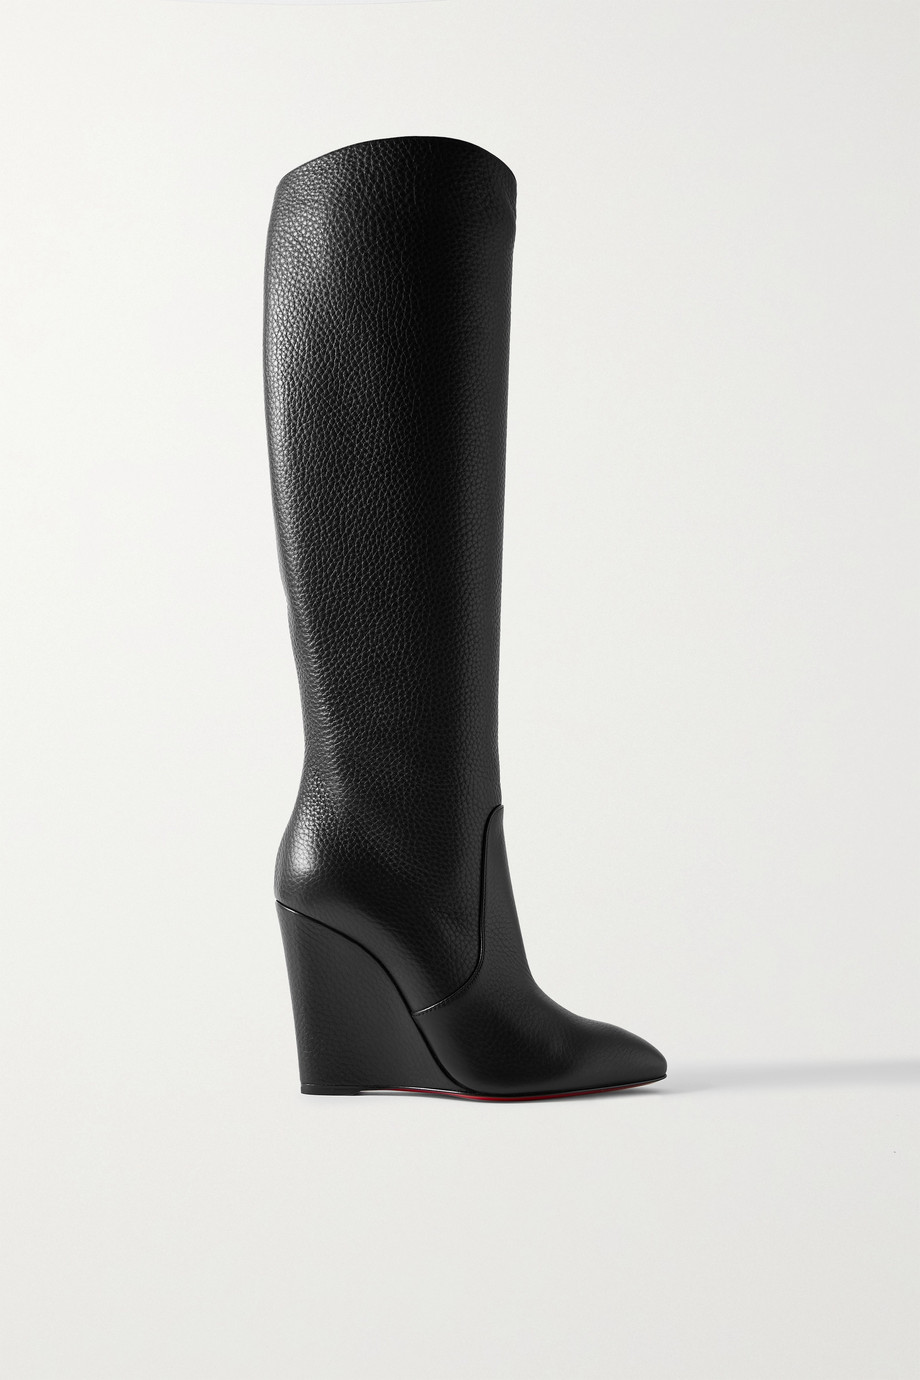 CHRISTIAN LOUBOUTIN Civiliza 100 textured-leather knee boots